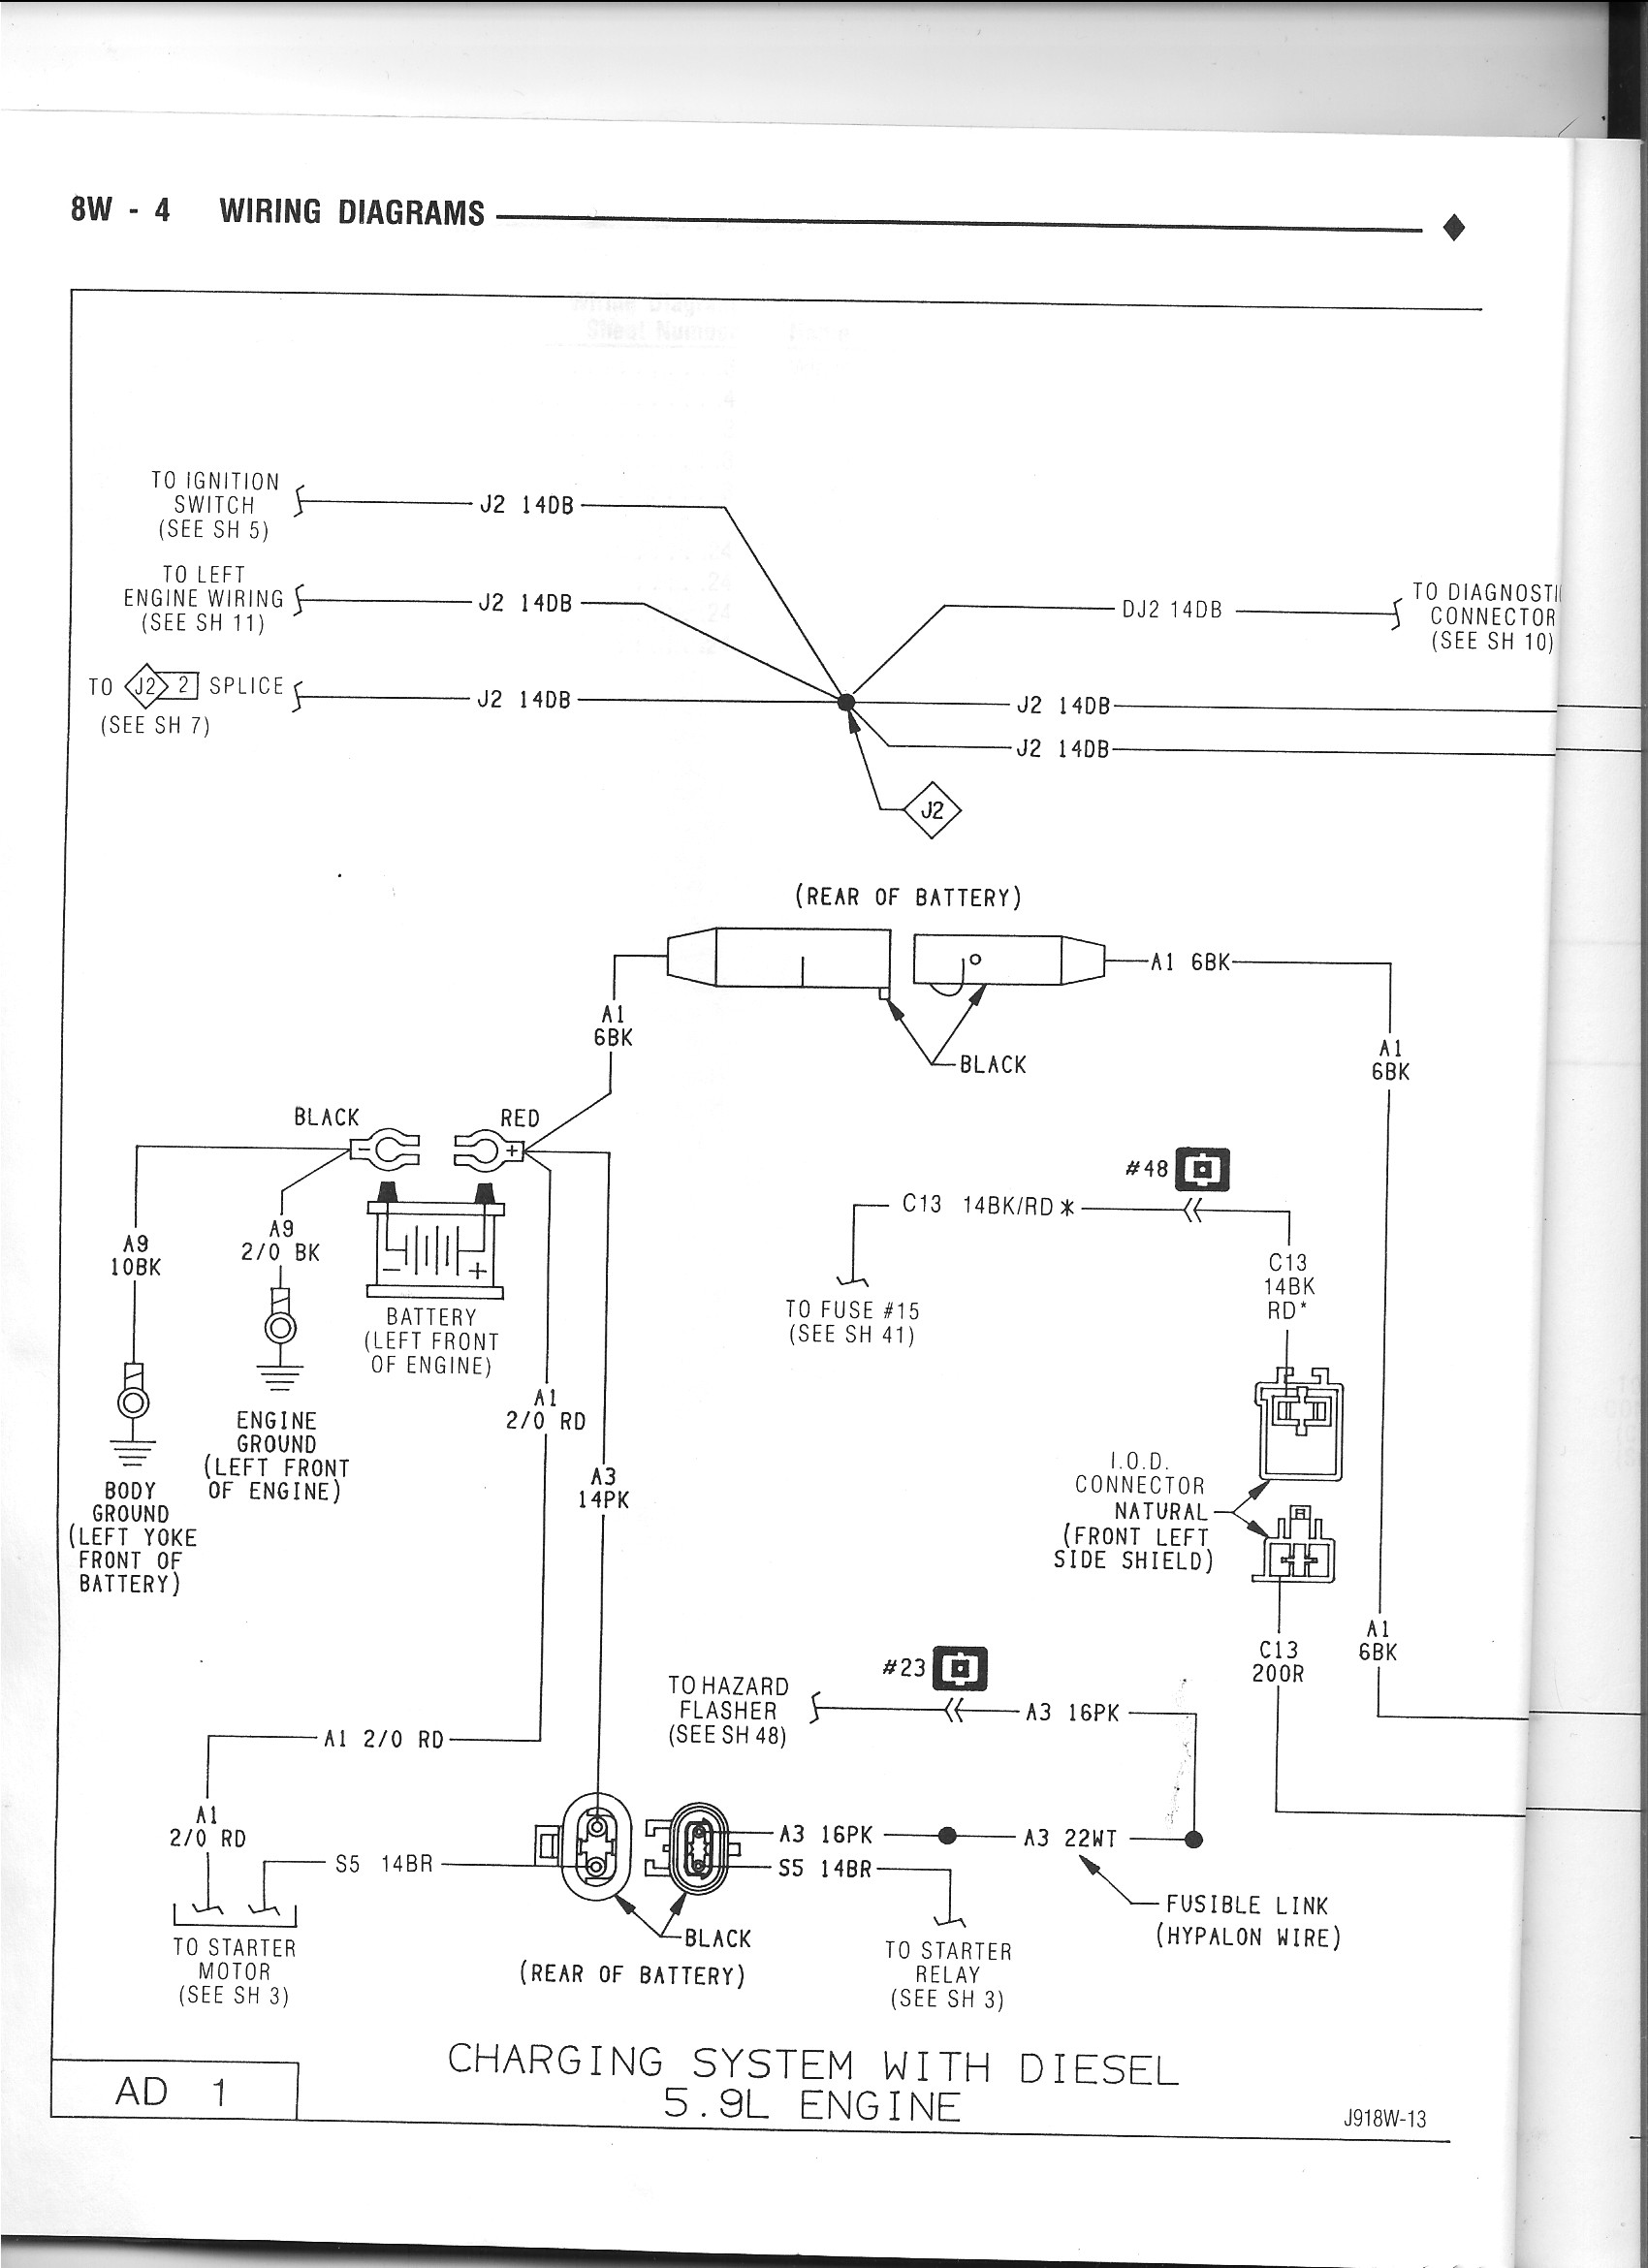 power wire melted when trying to crank - dodge cummins ... 1991 dodge w250 wiring diagram 1991 dodge stealth wiring diagram